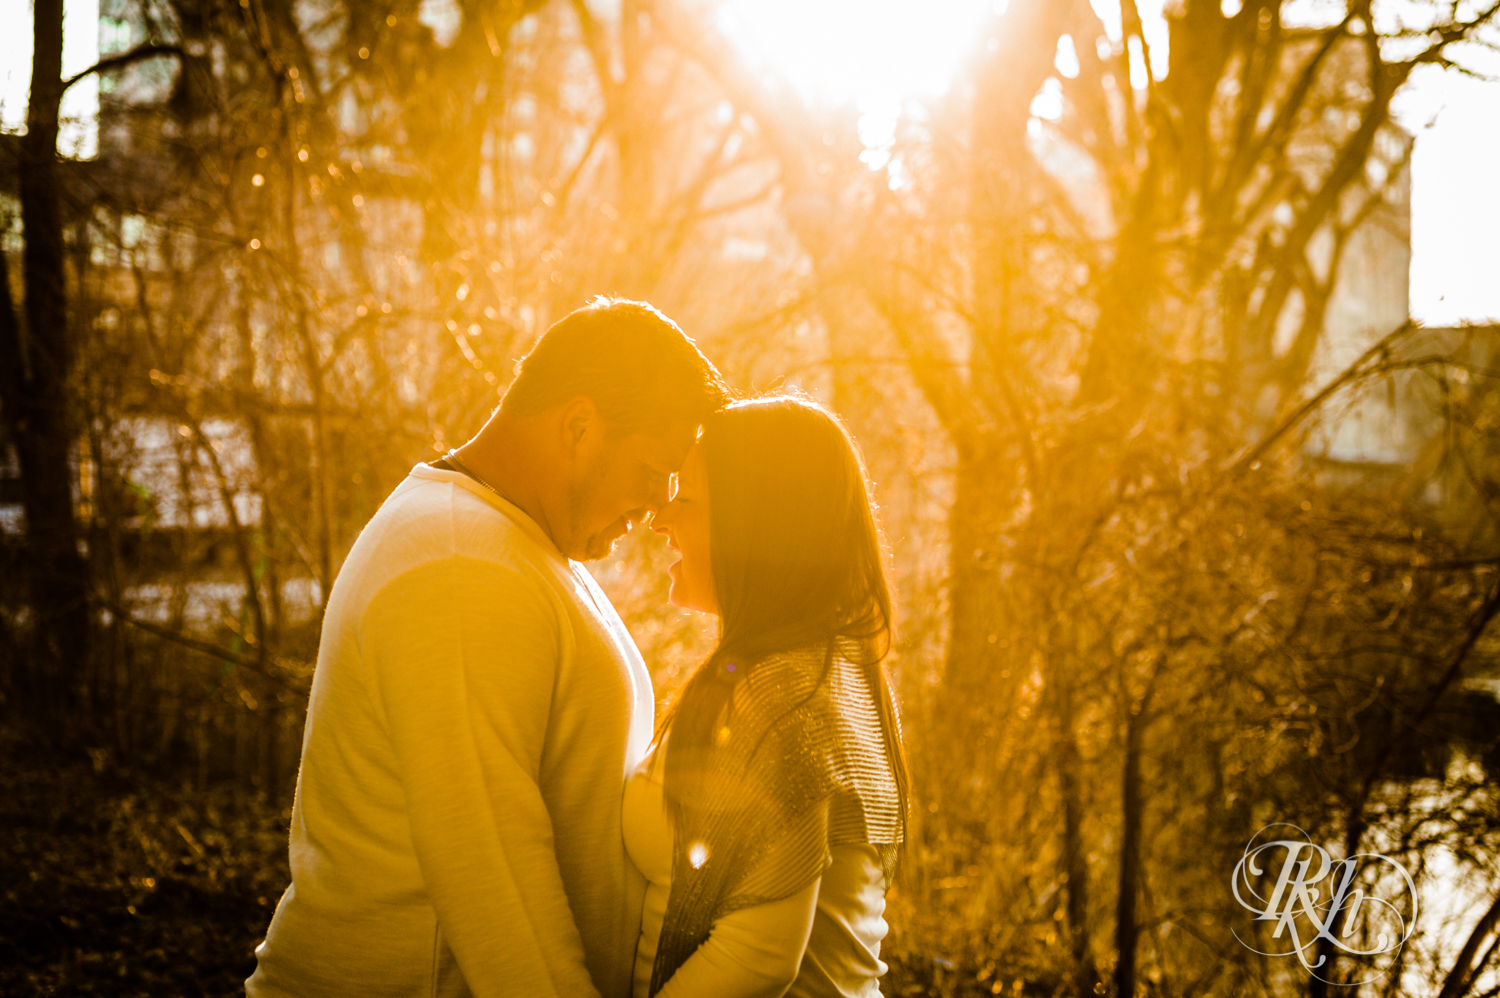 Jolene & Mike - Minnesota Engagement Photography - Sunrise - Stone Arch Bride and St. Anthony Main - RKH Images  (12 of 12).jpg